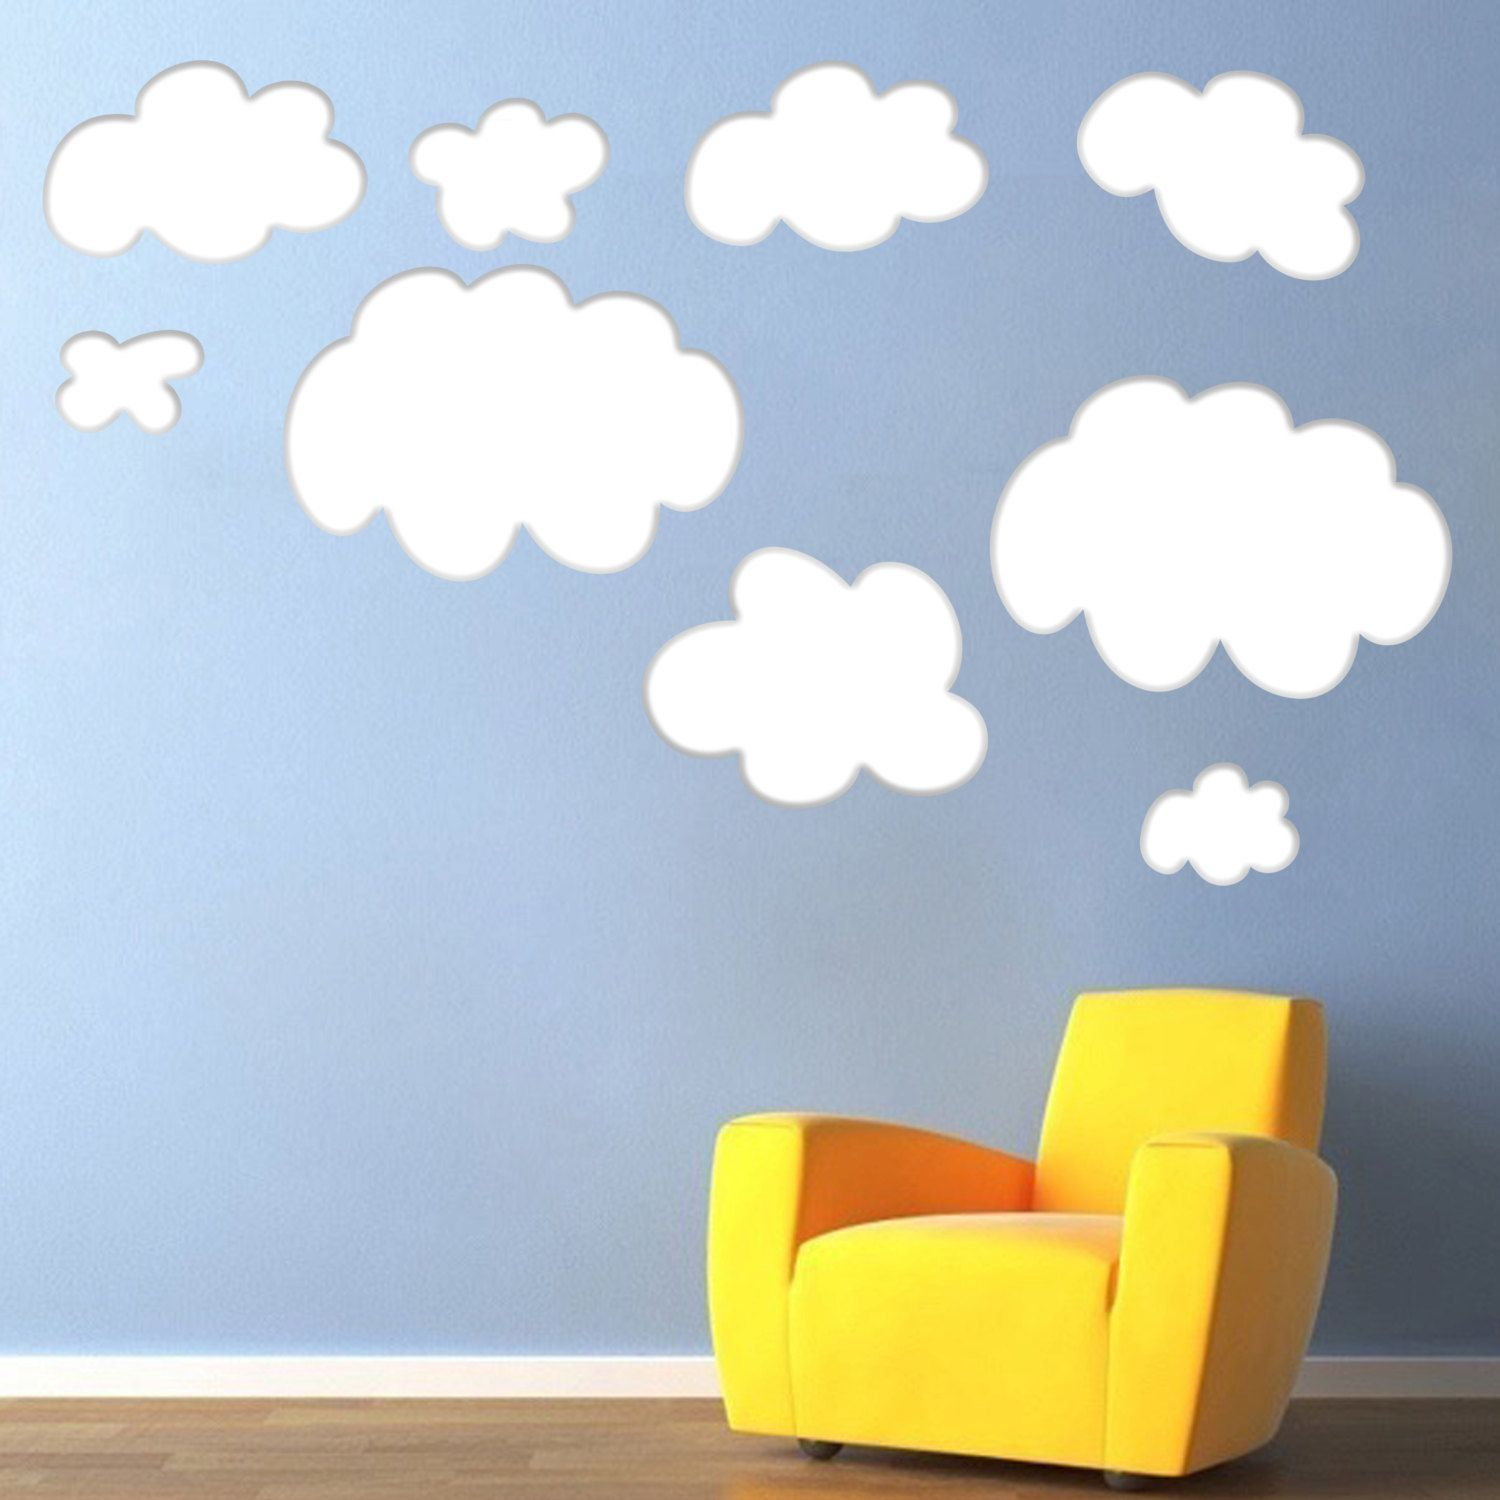 Cloud Wallpaper For Bedroom Bedroom Cloud Decals Cloud Wall Art Design Cloud Wall